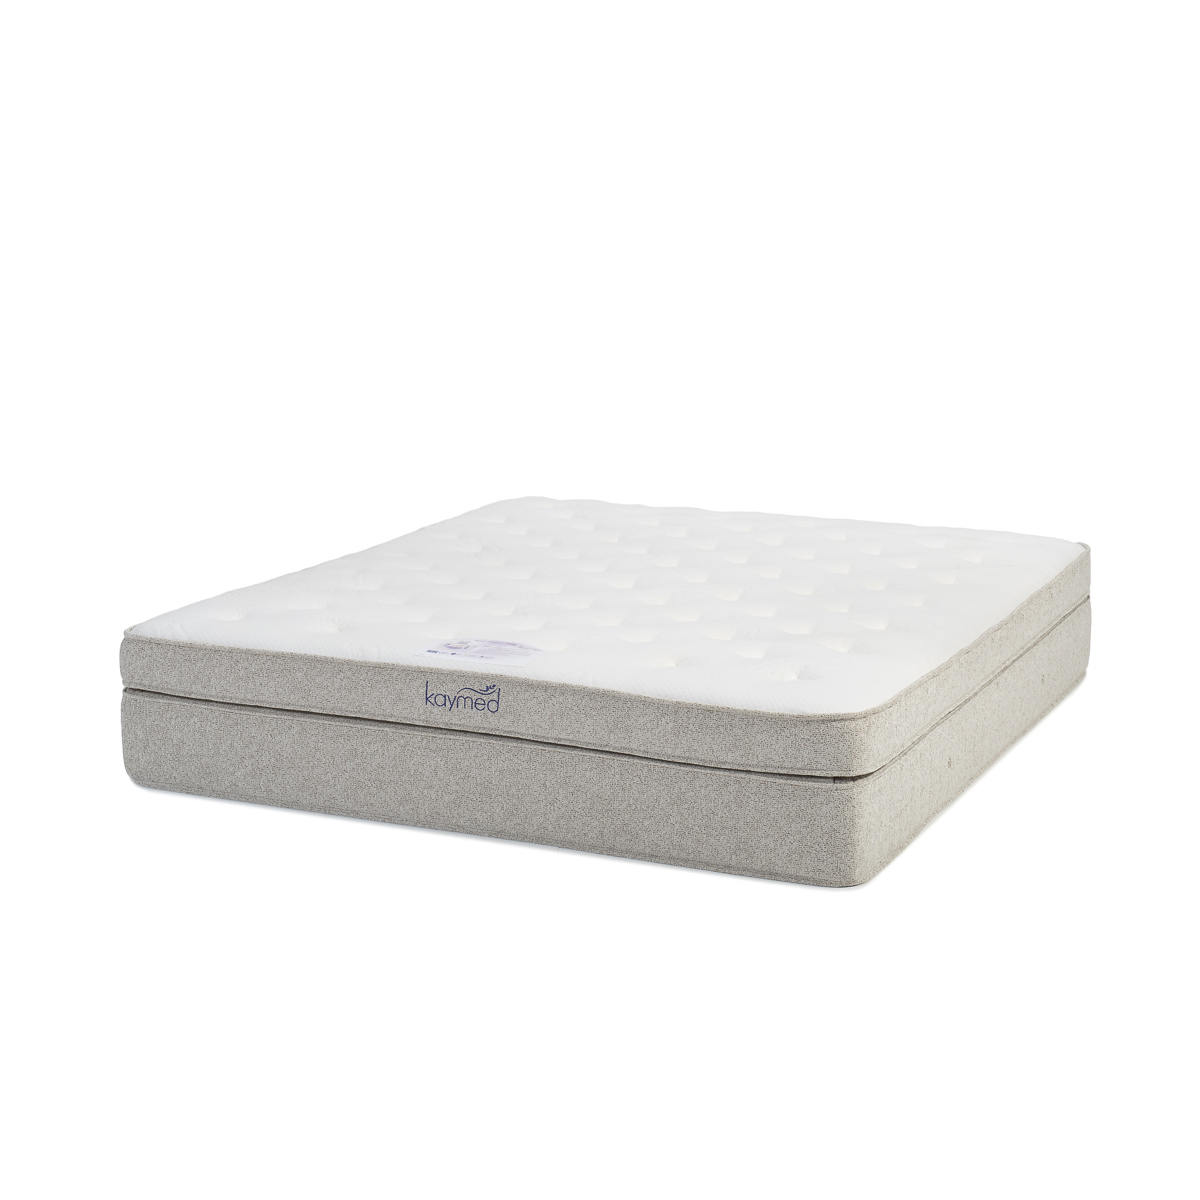 Kaymed iKool Sublime 2500 Mattress